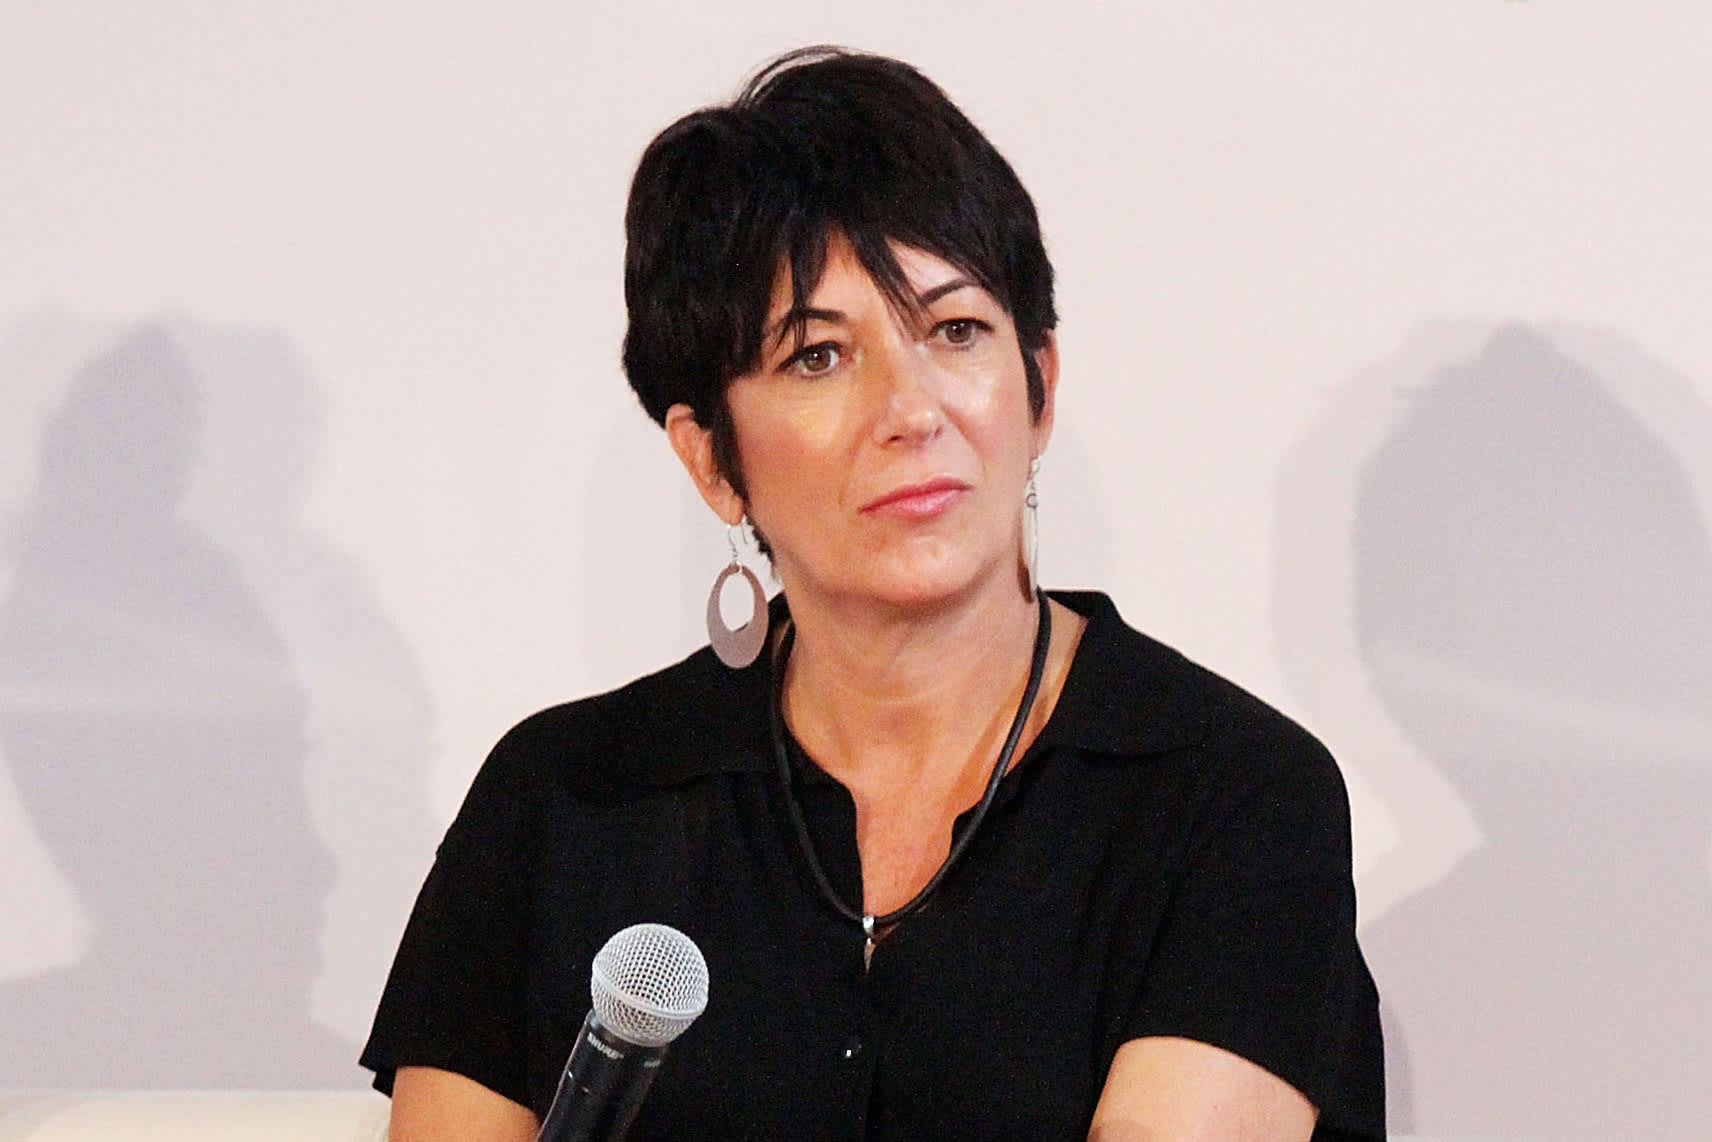 Ghislaine Maxwell lawyers want her in general jail population say Jeffrey Epstein's suicide is affecting her treatment – CNBC